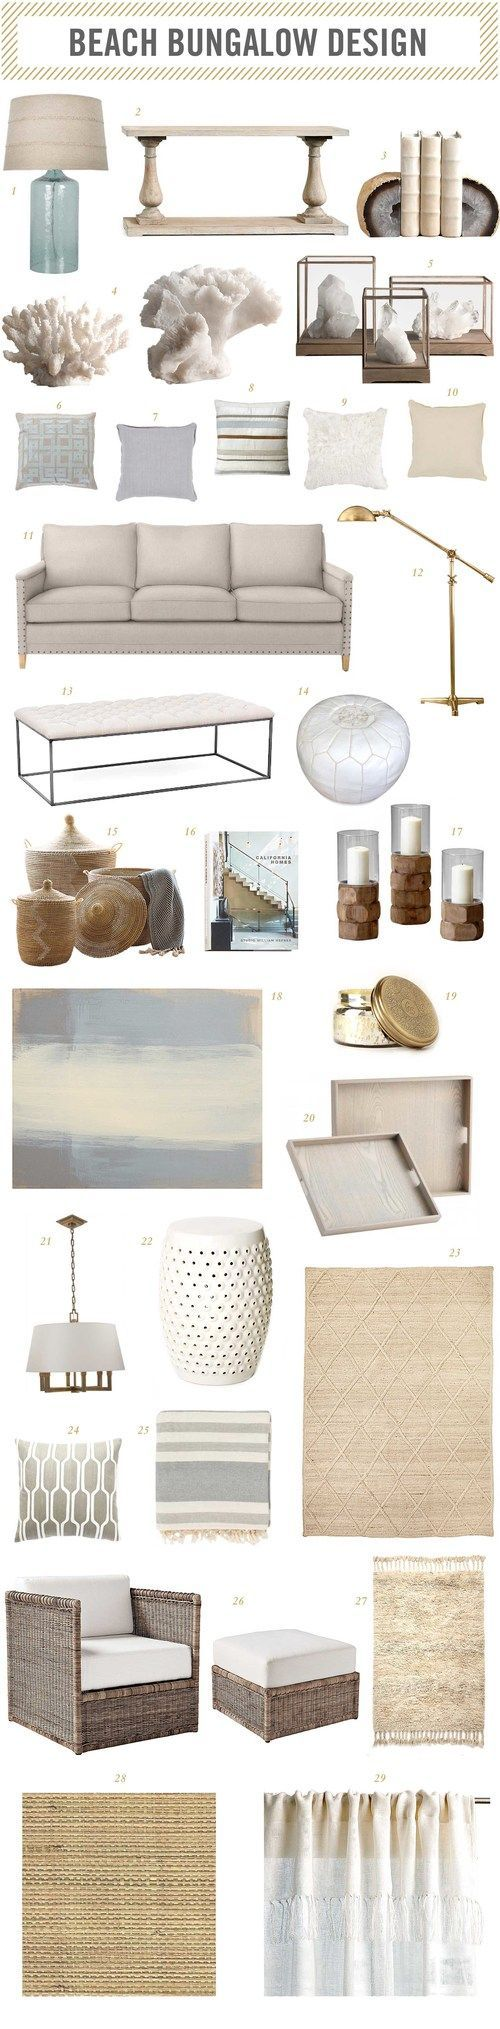 | beach bungalow room design |